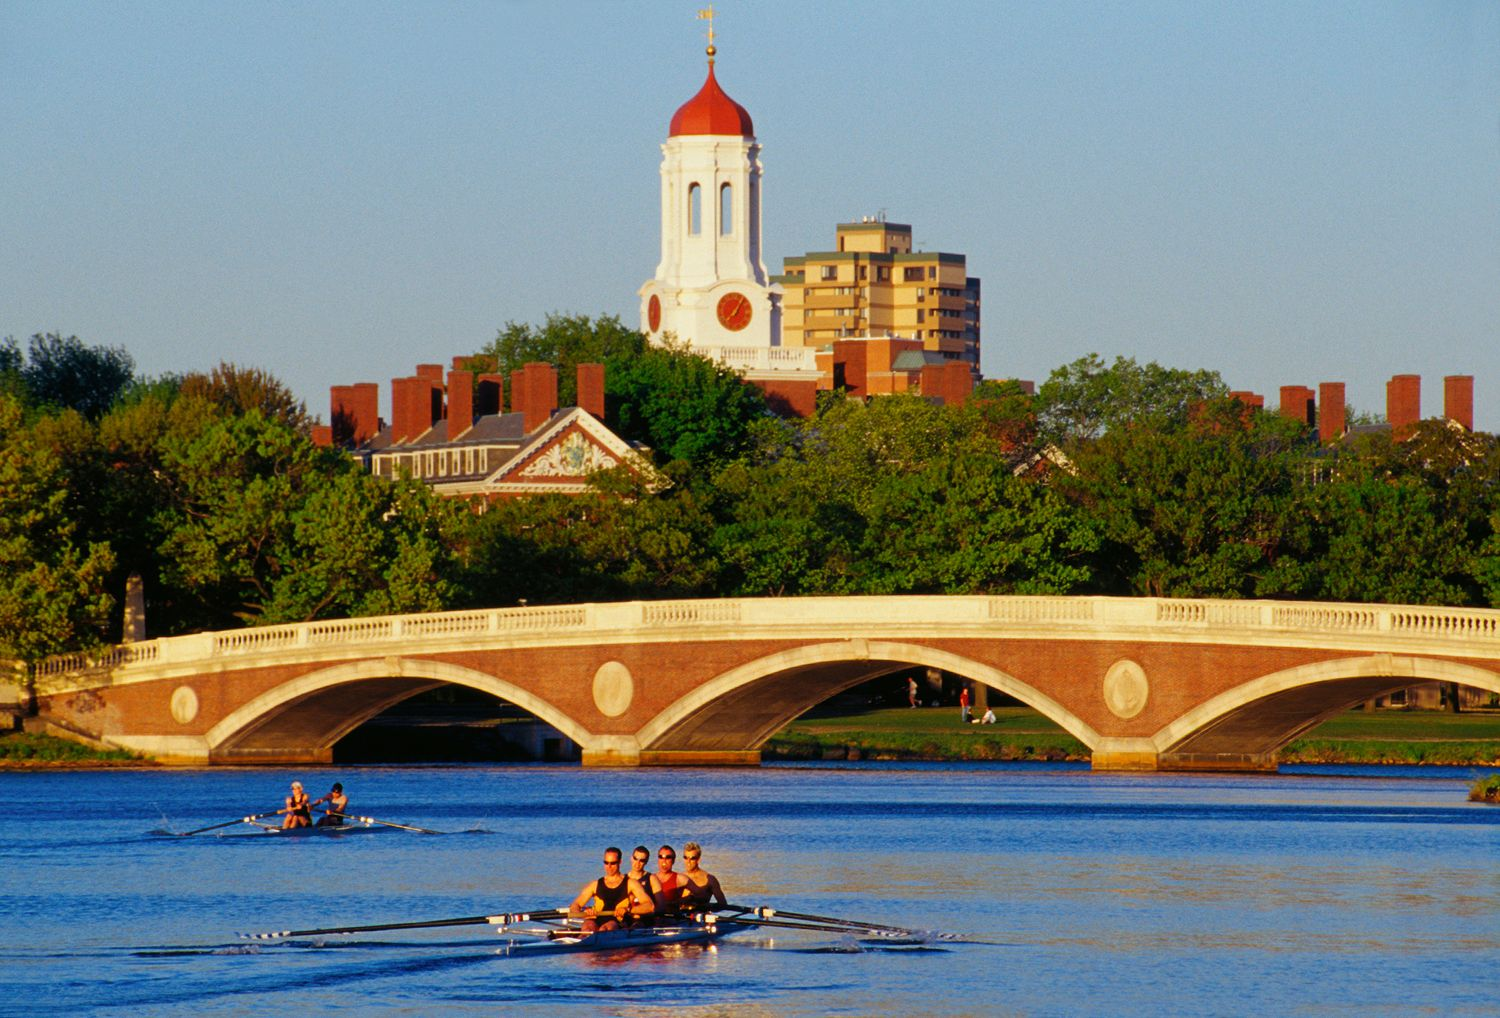 Rowers at Weeks Bridge, Cambridge, MA